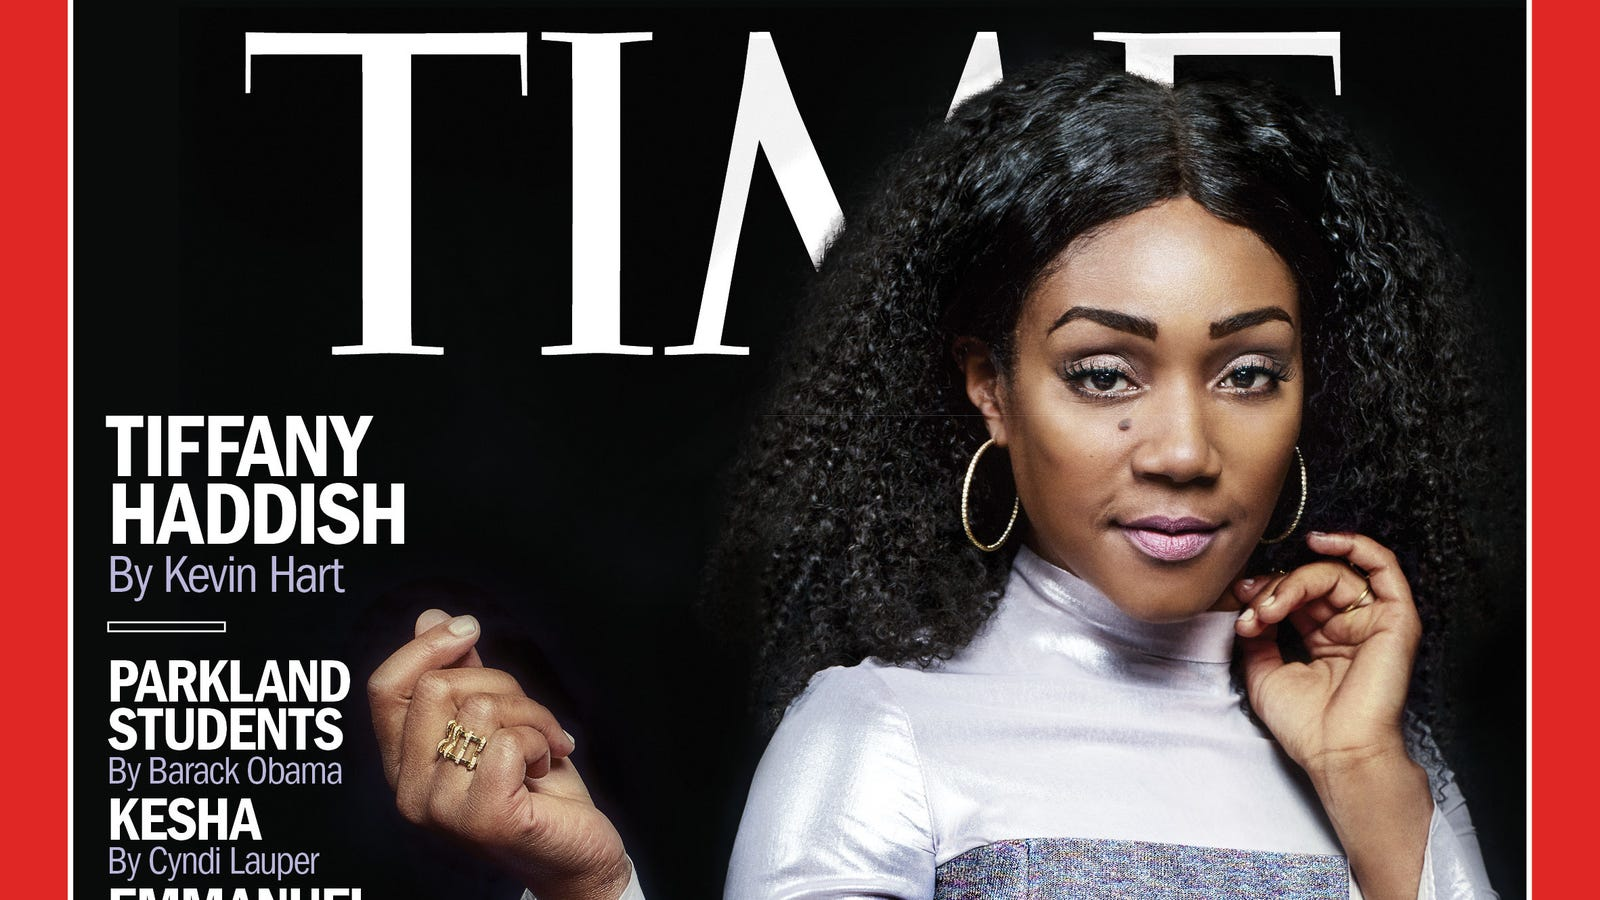 Tiffany Haddish Lands Cover of Time's 100 Most Influential People Issue